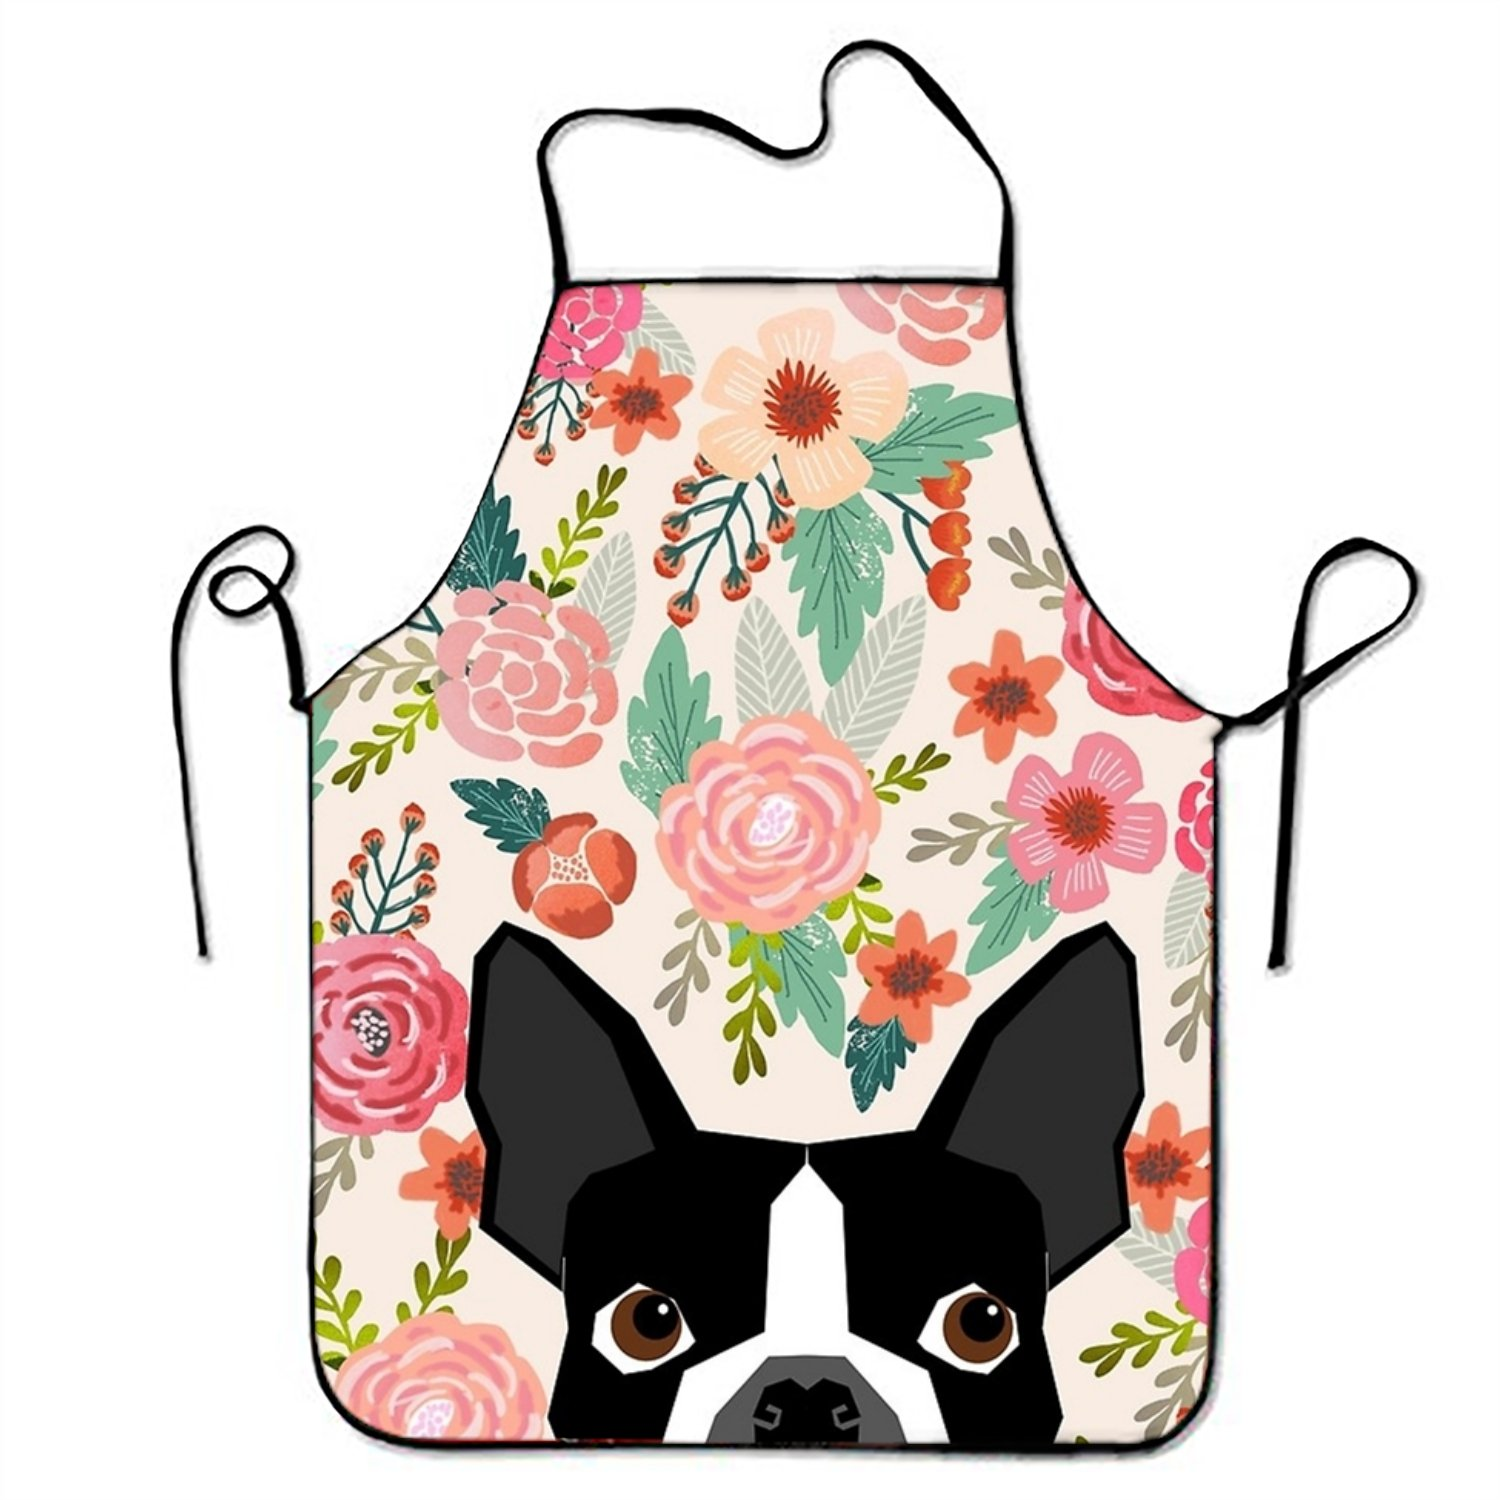 aportt Unisex Waterproof Aprons Boston Terrier Dog Florals Kitchen Apron with Adjustable Strap for Cooking Gardening